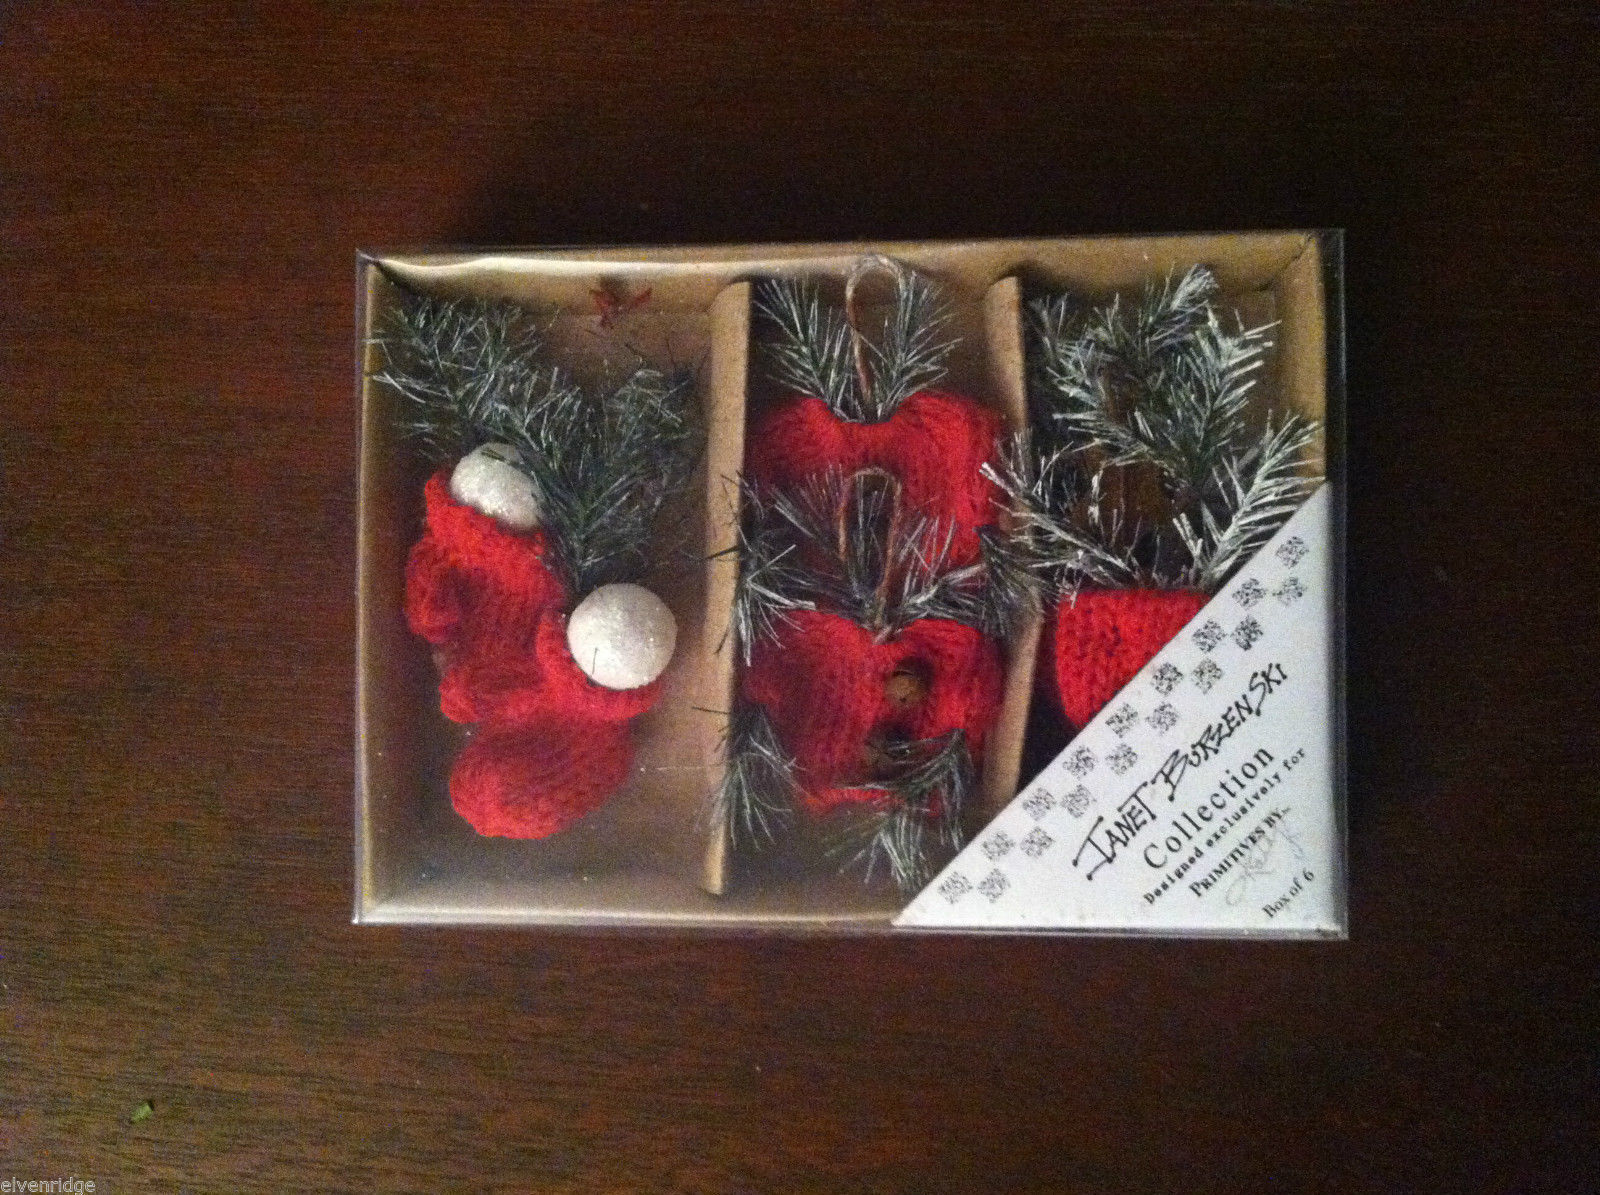 3 Pairs of miniature Red Knit Winter Mittens, Hat, Sweater Christmas ornaments